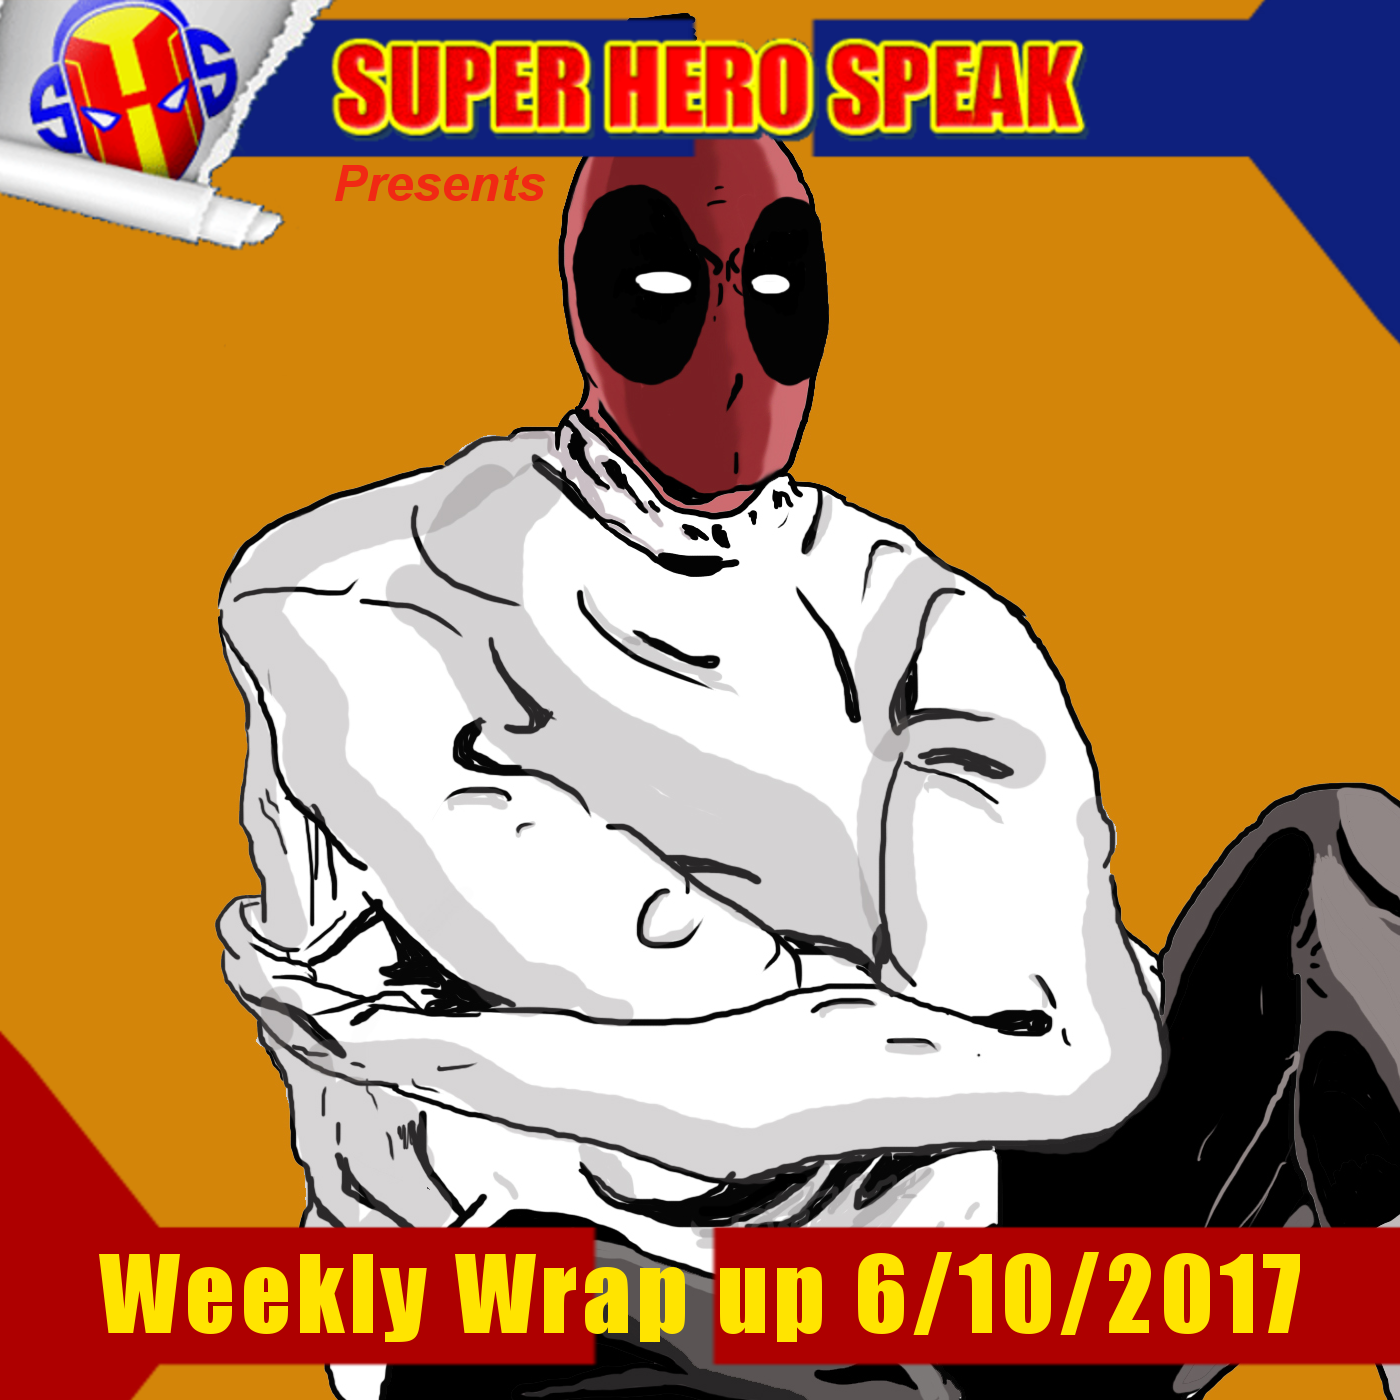 SHS Weekly Wrap Up 06/10/2017